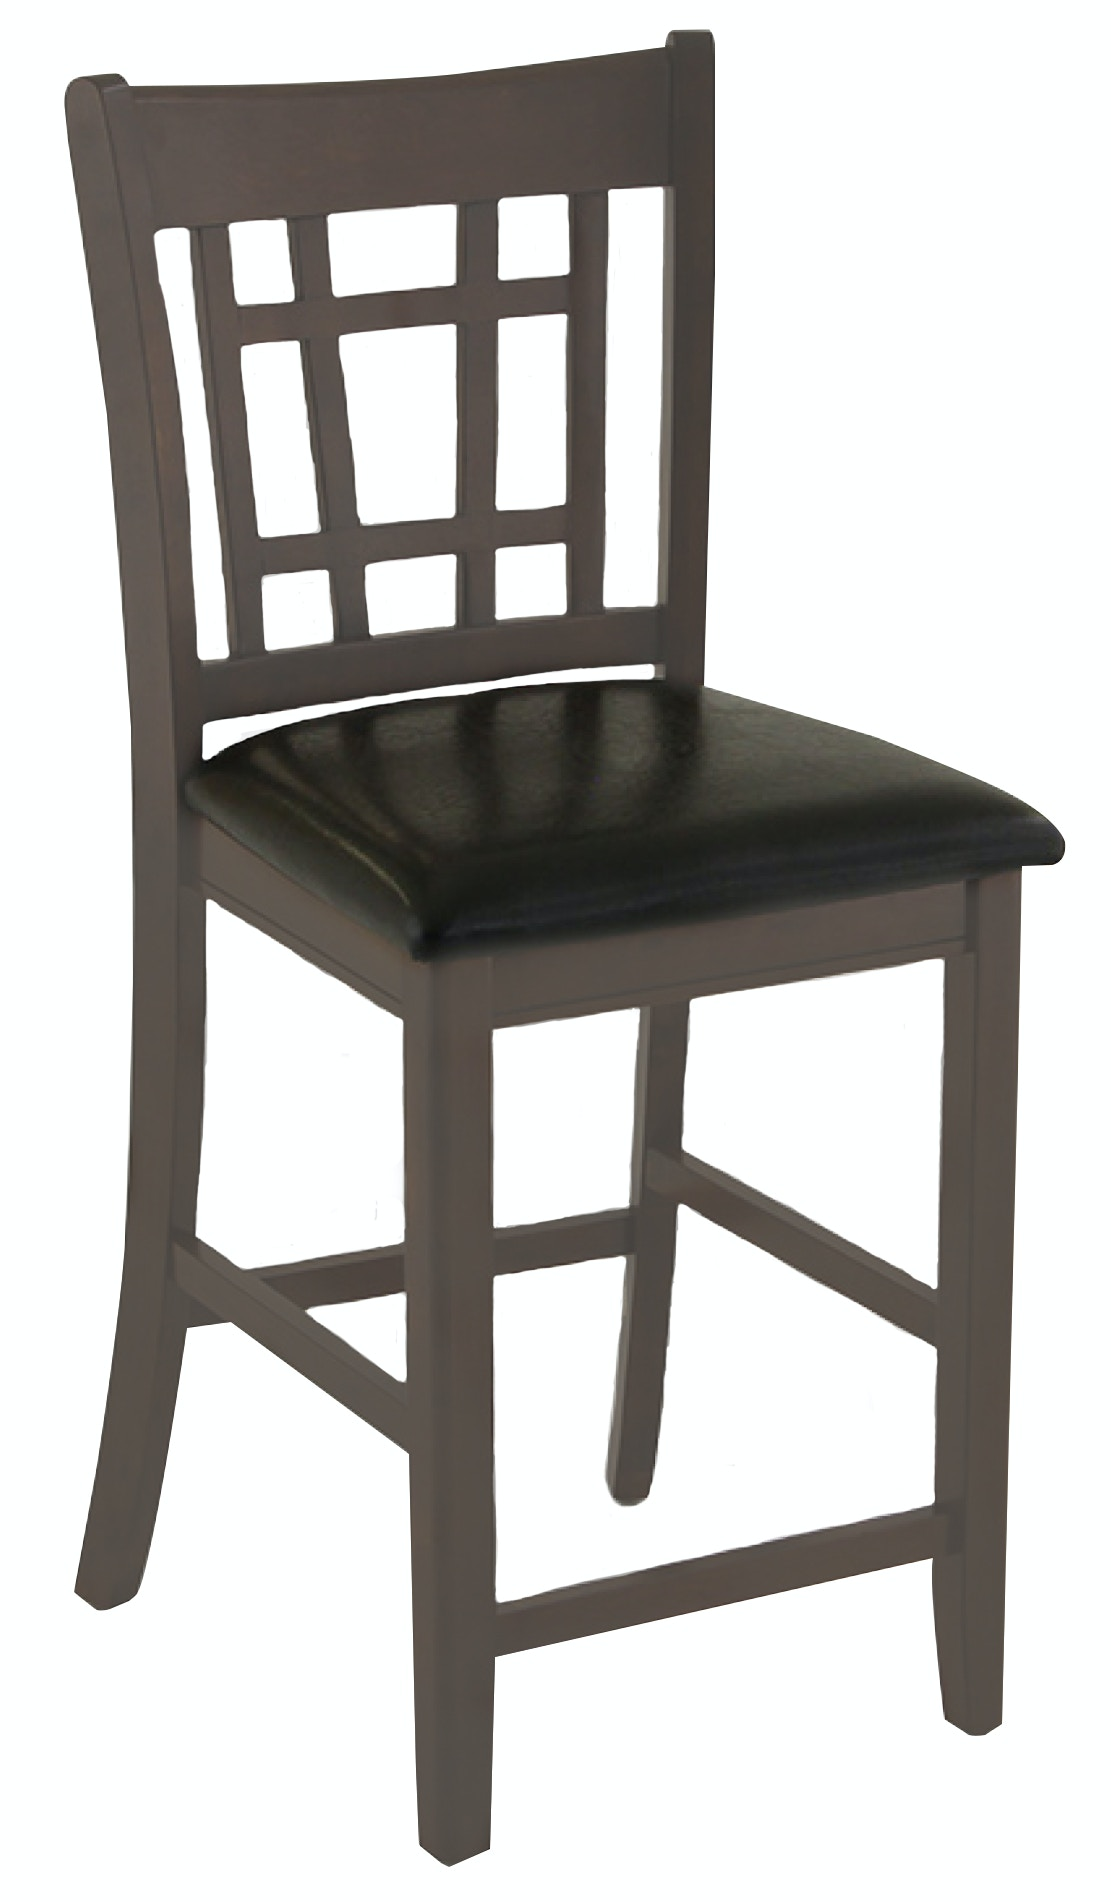 Attrayant Lattice Pub Side Chair ST:501111